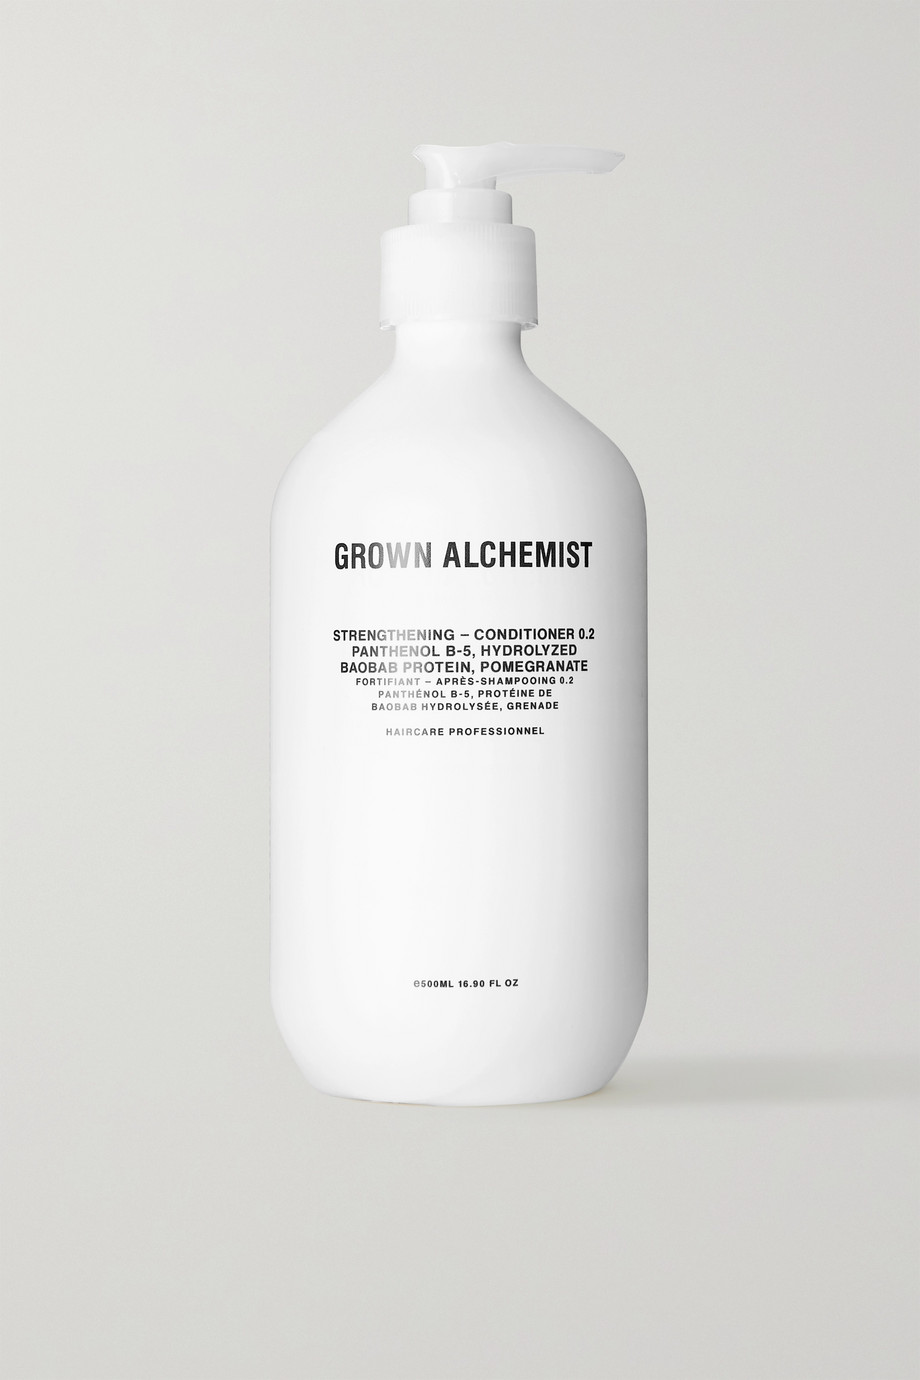 GROWN ALCHEMIST Strengthening - Conditioner 0.2, 500ml